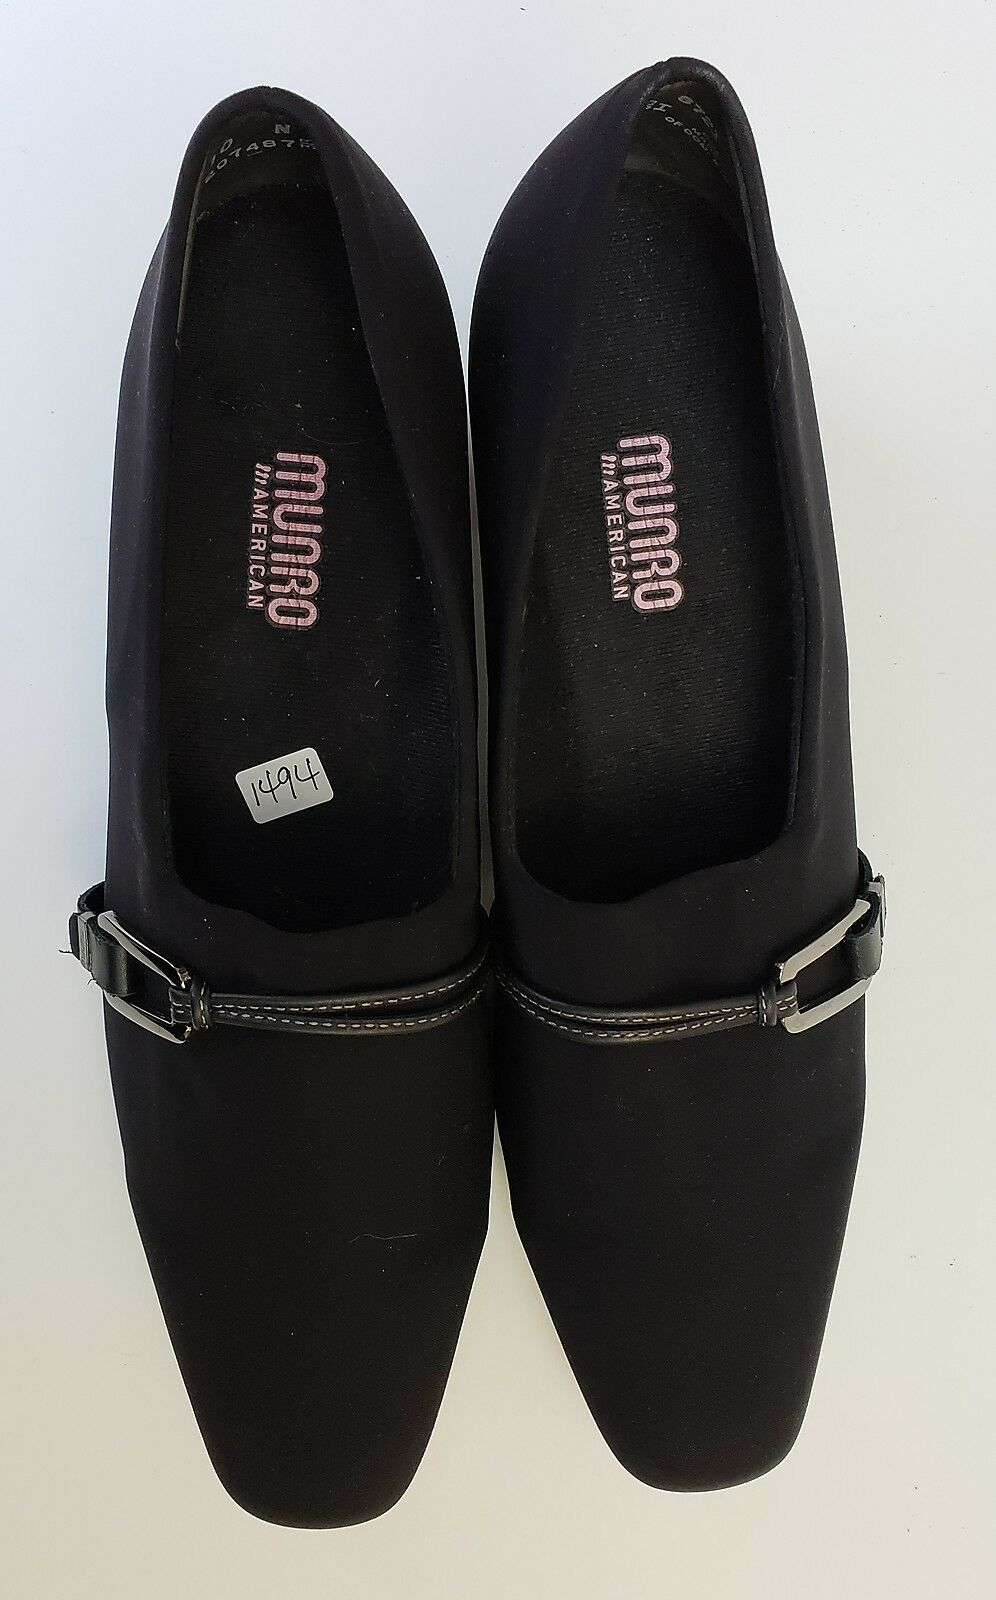 Munro shoes Heels Black Pumps Slip On On On Fabric Upper Low Heels USA Womens Size 10N 8a5376